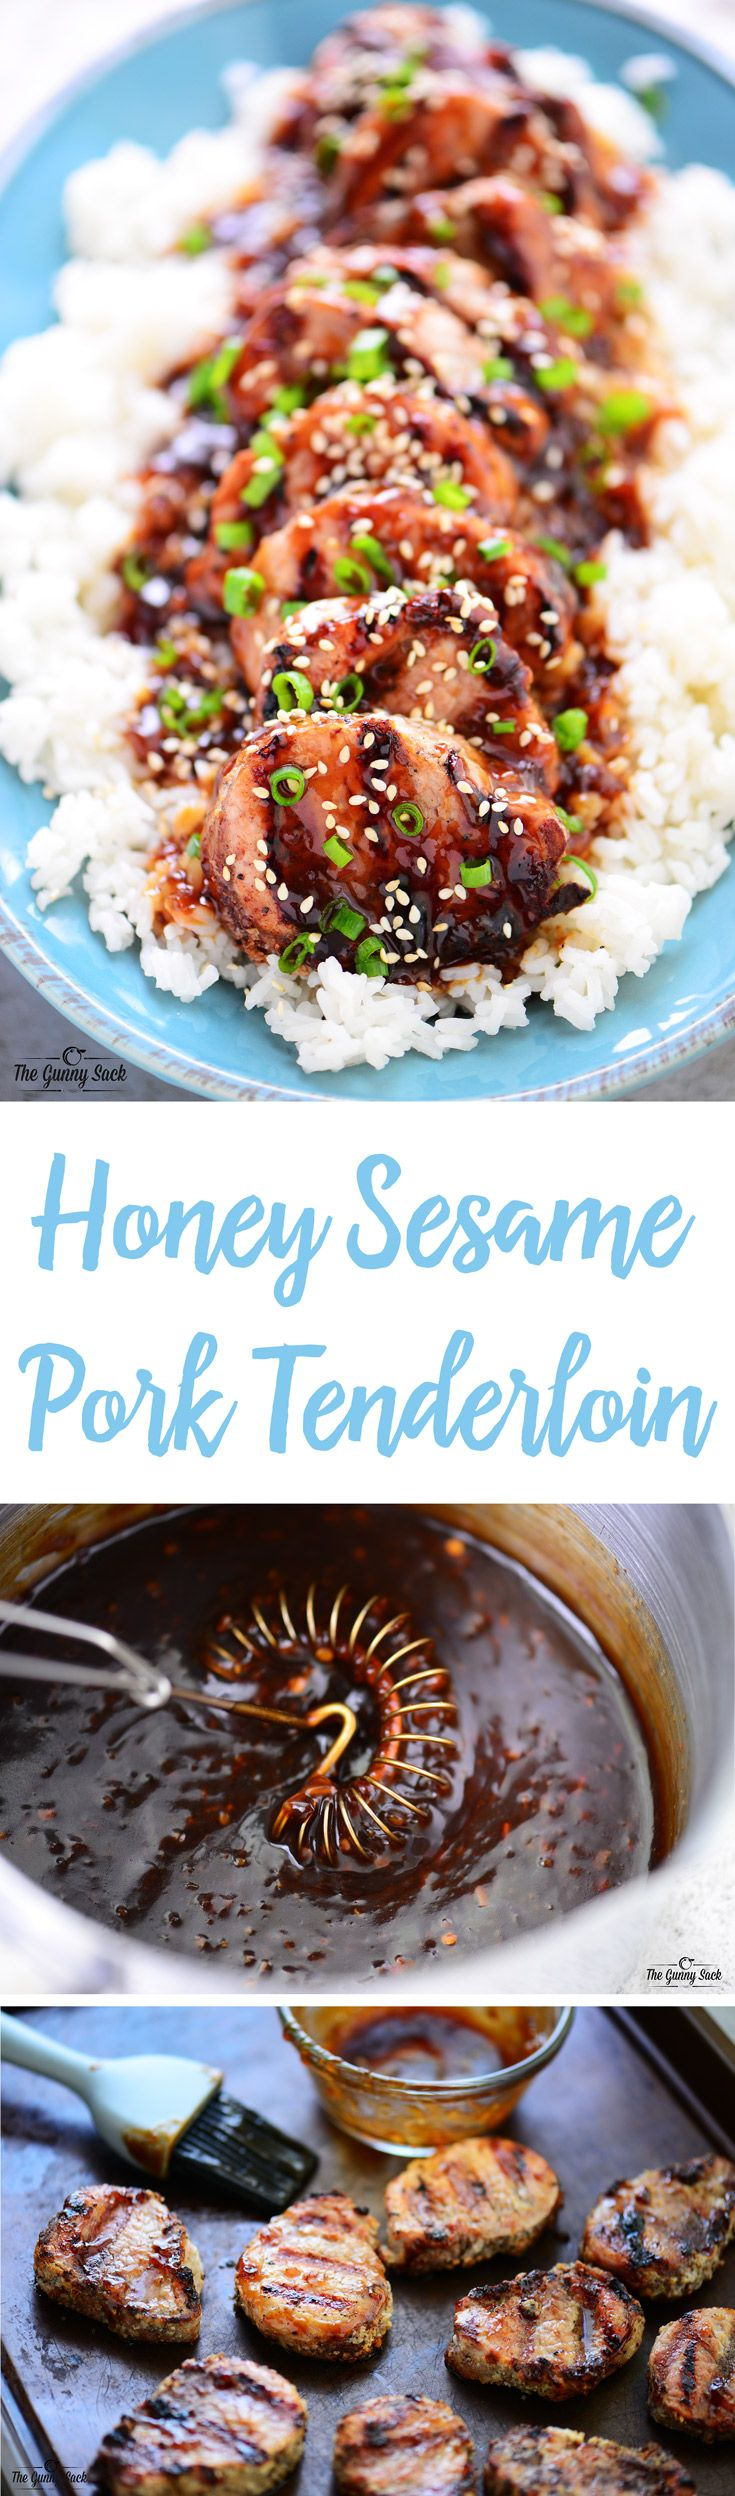 This Honey Sesame Pork Tenderloin is an easy family dinner recipe that's perfect for busy weeknights. The pork is fully cooked in only 8 minutes on the grill!